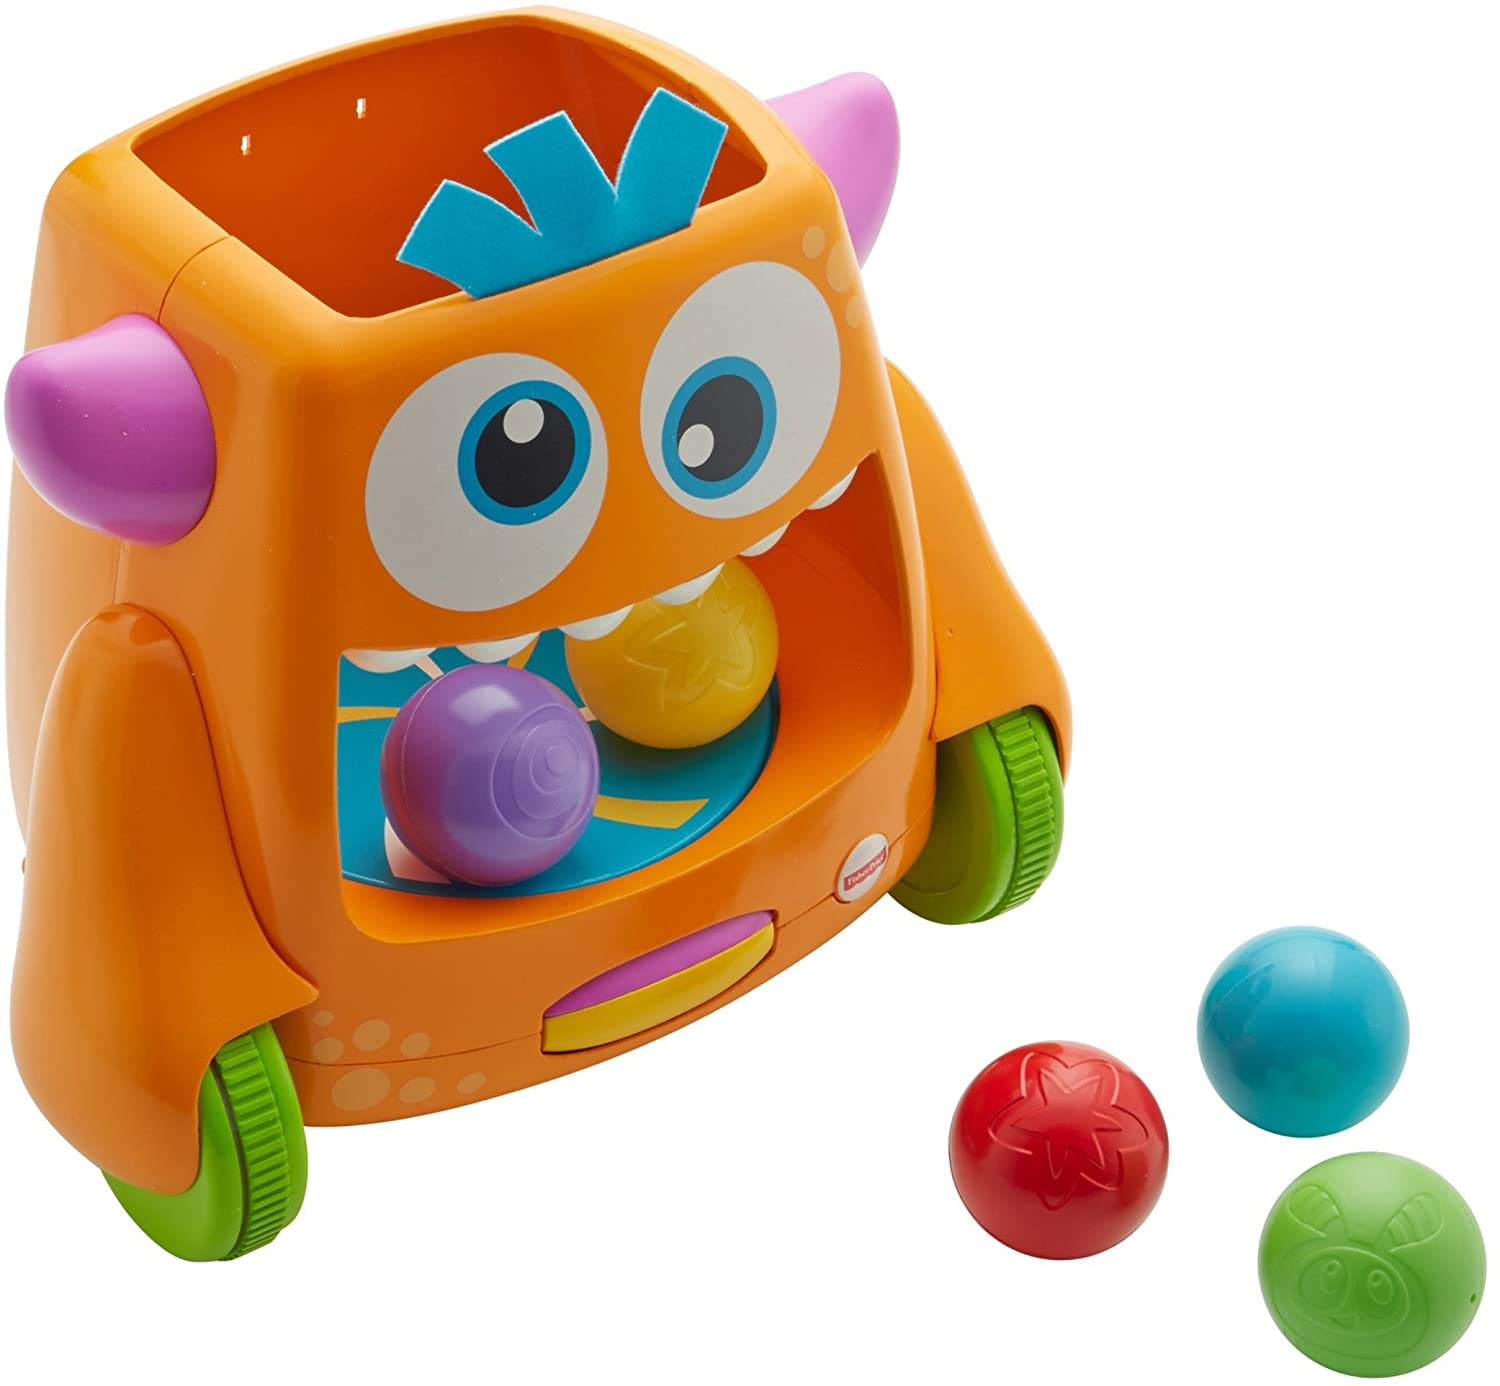 Amazon Fisher Price Zoom n Crawl Monster Toy Toys & Games